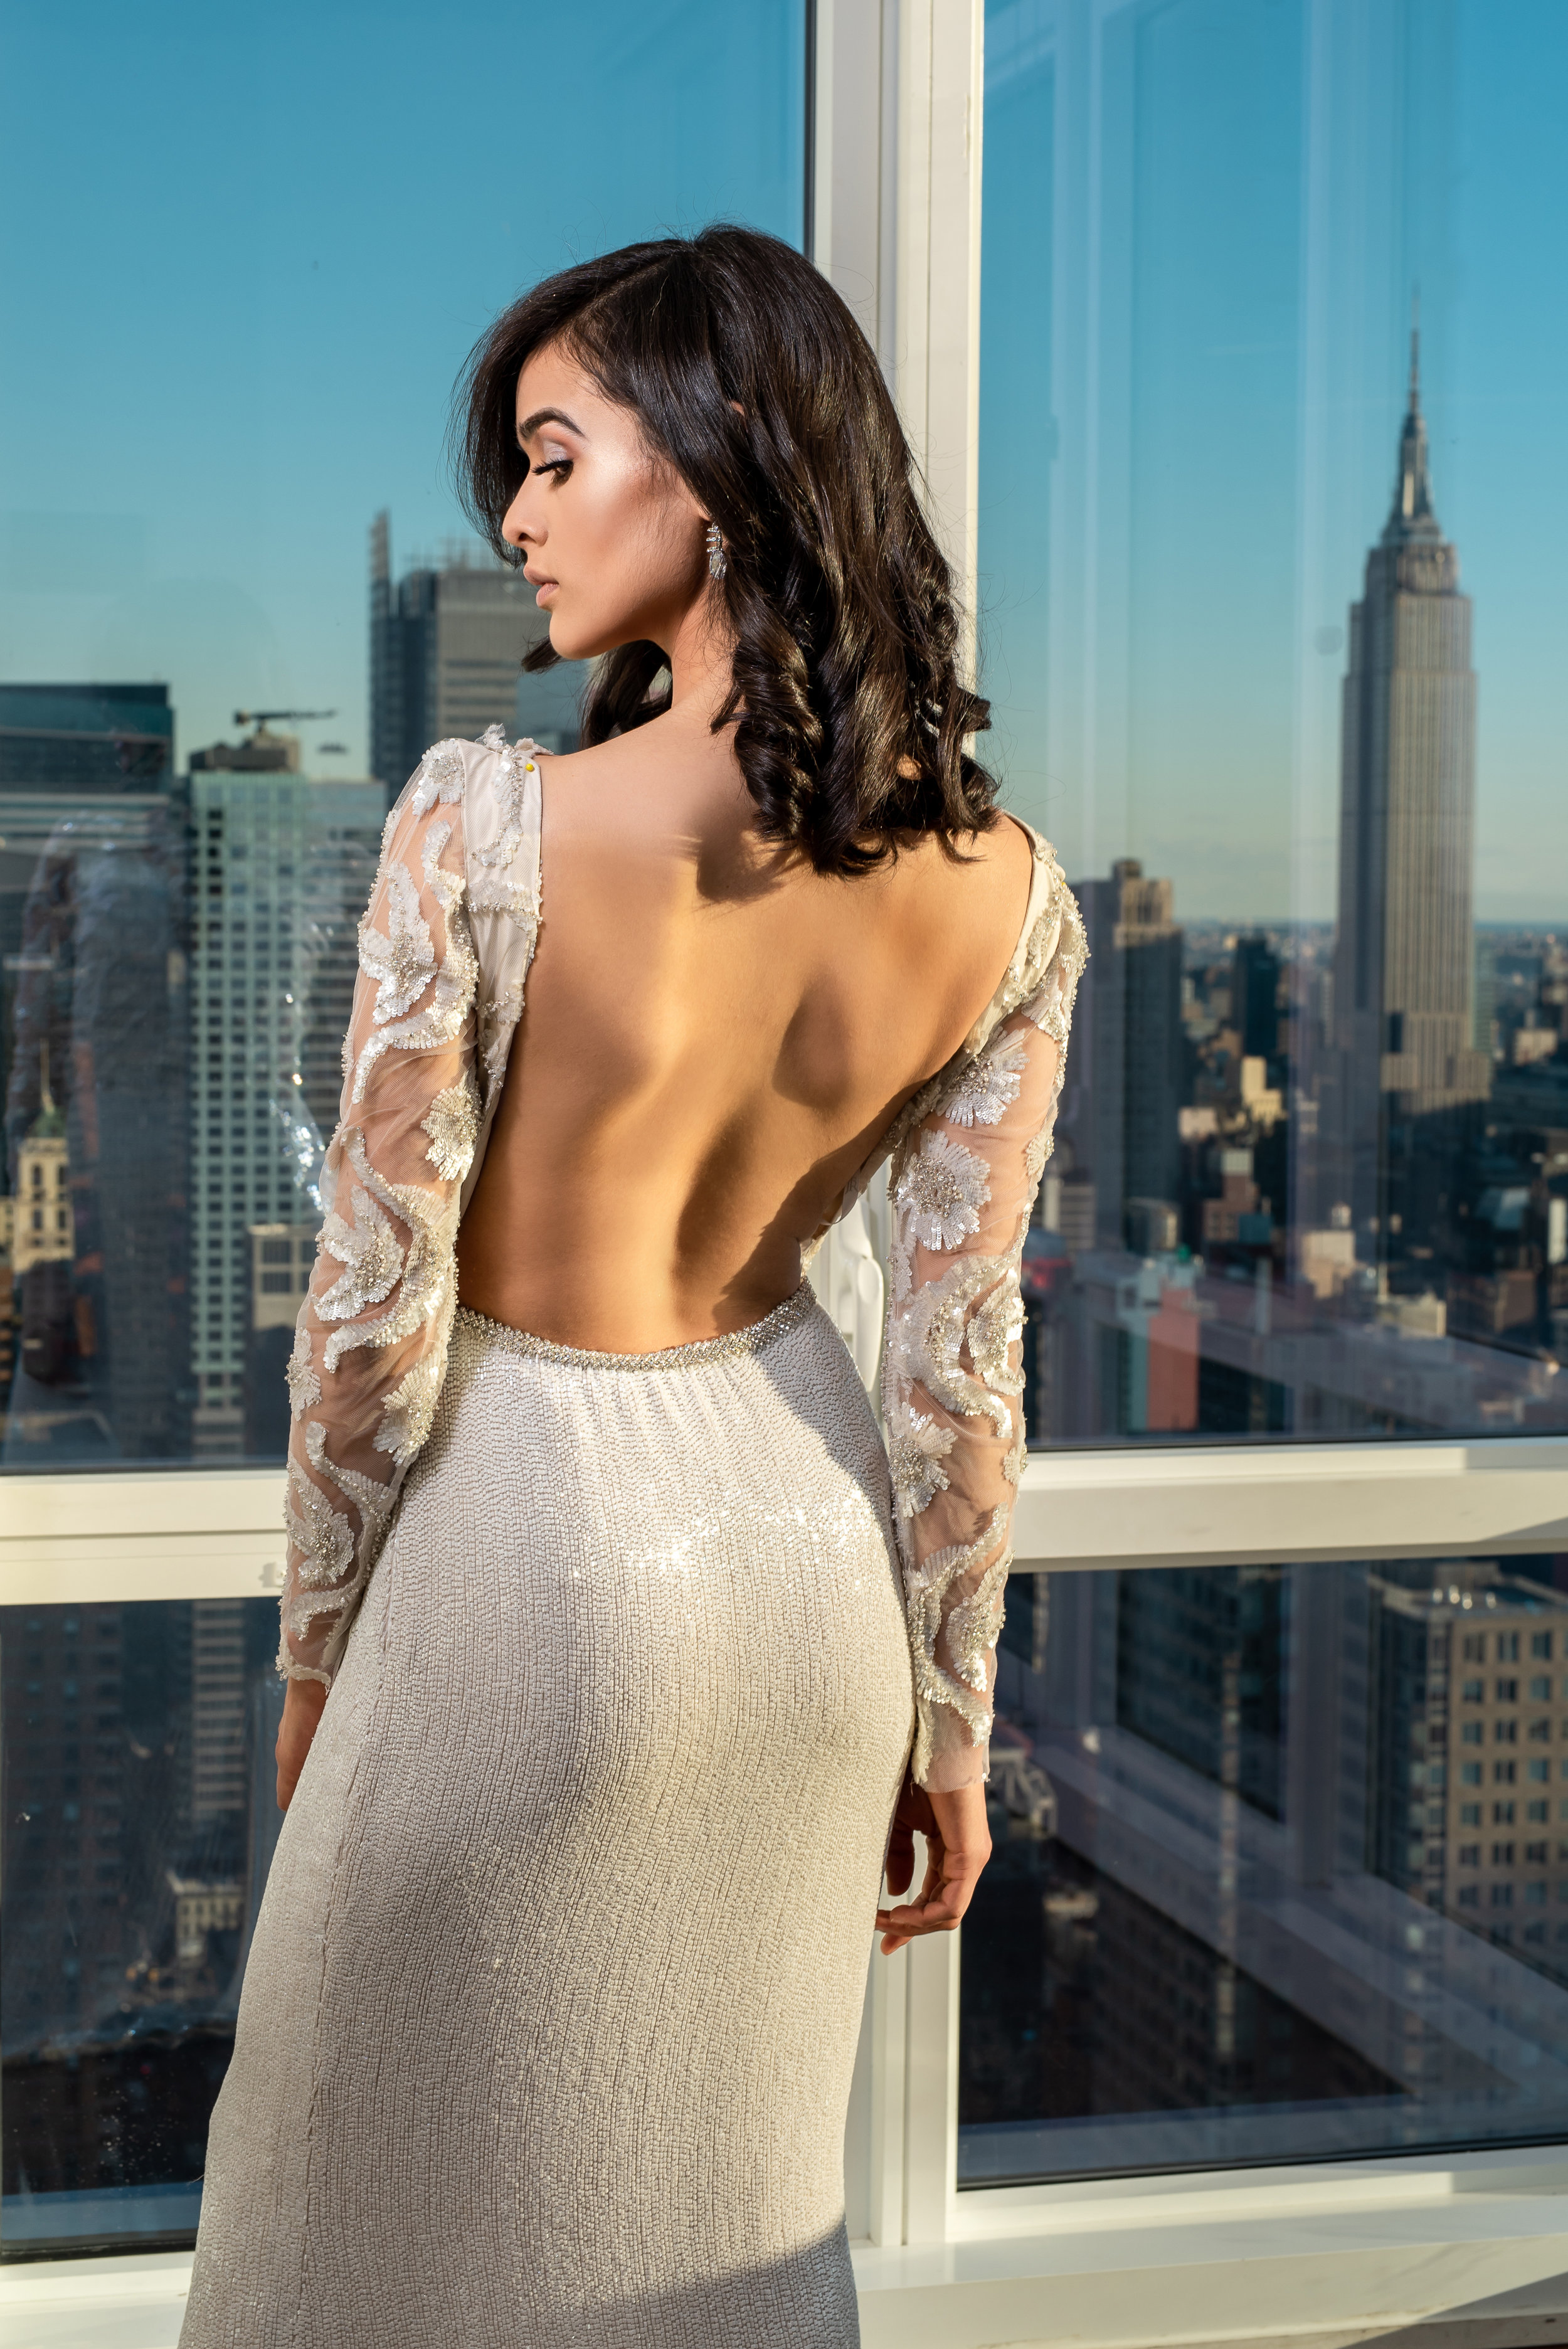 Jean_Ralph_Thurin_Luxe Shimmer_Haute Couture_by_Aly_Kuler_Photography-118.jpg